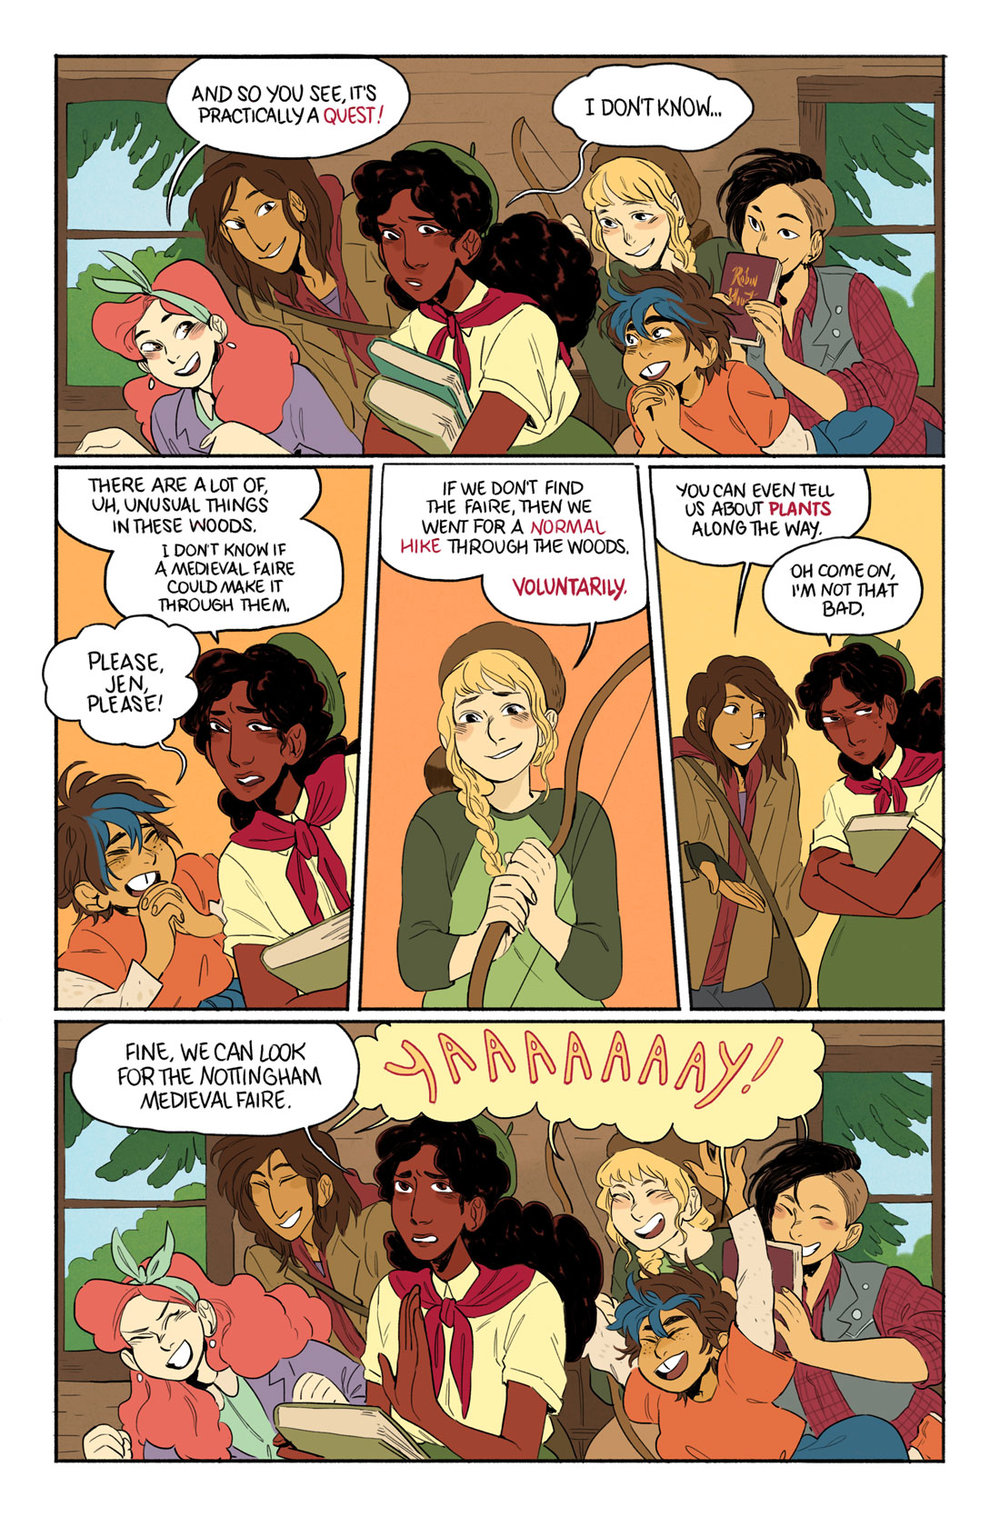 from  Faire & Square , 2017 Lumberjanes Summer Special issue, written by Holly Black